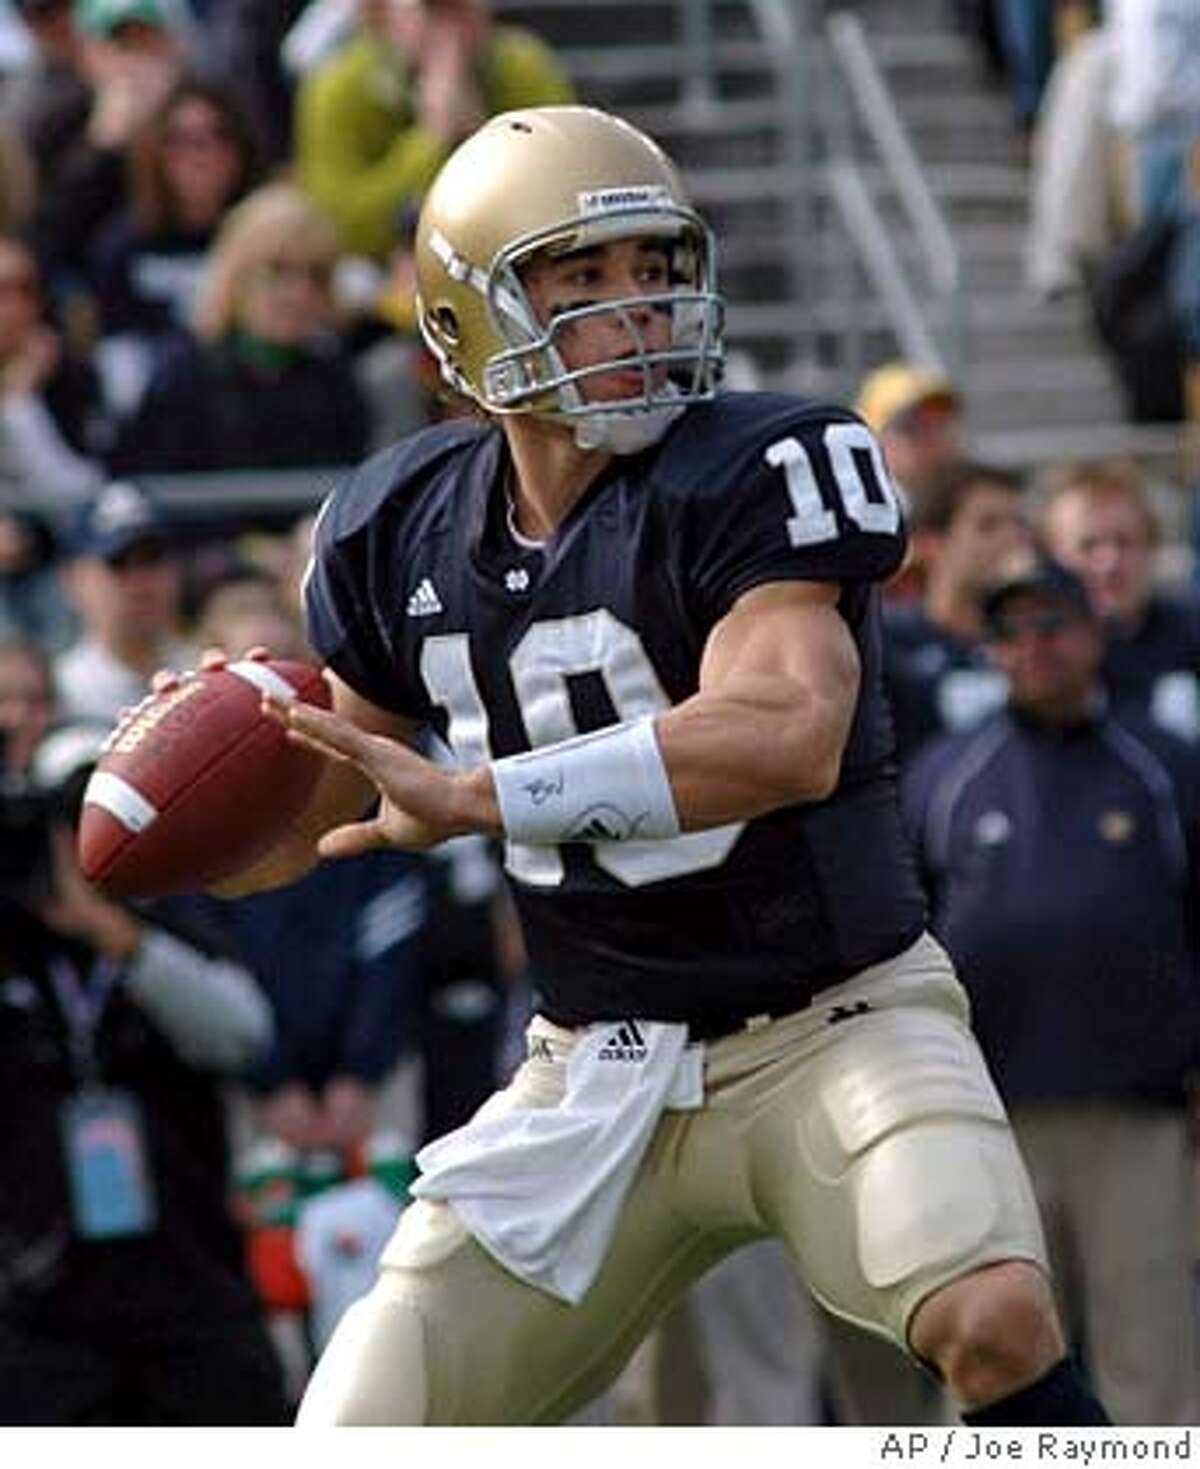 ** FILE ** Notre Dame quarterback Brady Quinn (10) throws a pass during the first quarter of Notre Dame's 20-17 victory over UCLA in college football action Saturday Oct. 21, 2006 in South Bend, Ind. (AP Photo/Joe Raymond)